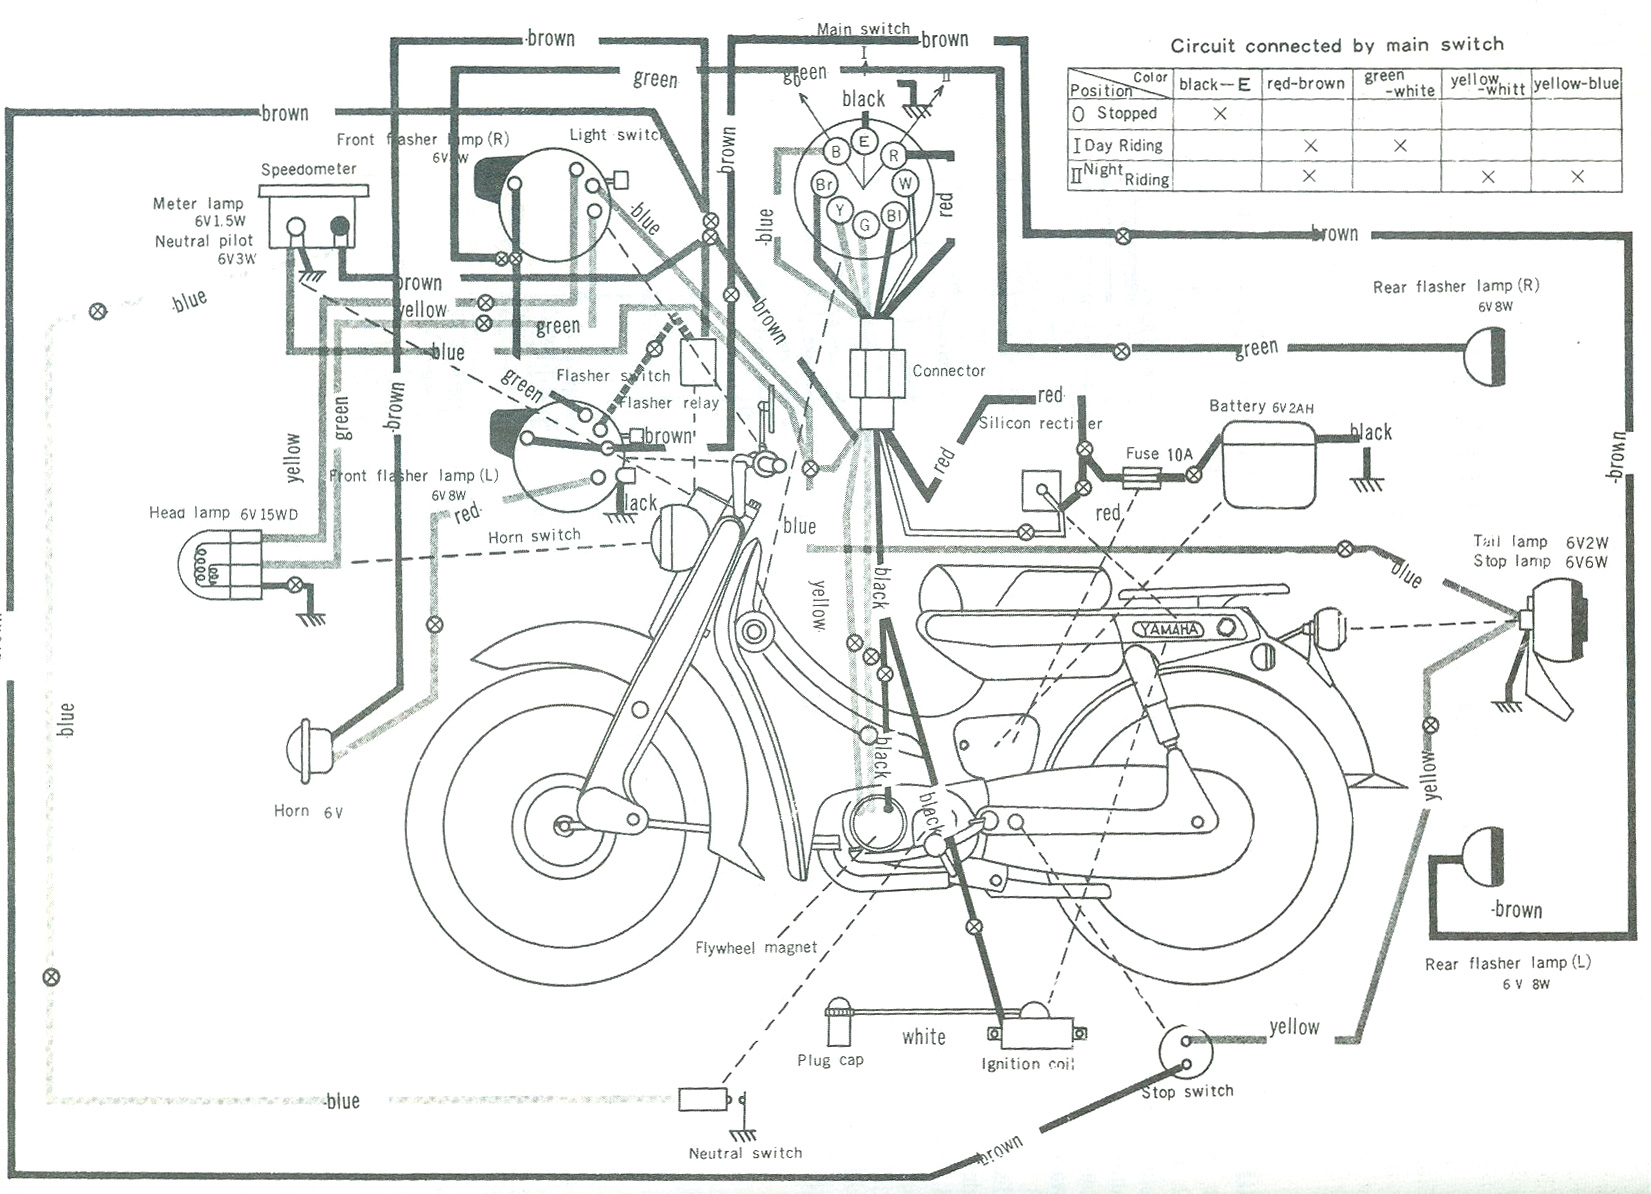 hight resolution of 1979 yamaha 175 it wiring schema wiring diagrams 1979 yamaha it400 1979 yamaha 175 it wiring